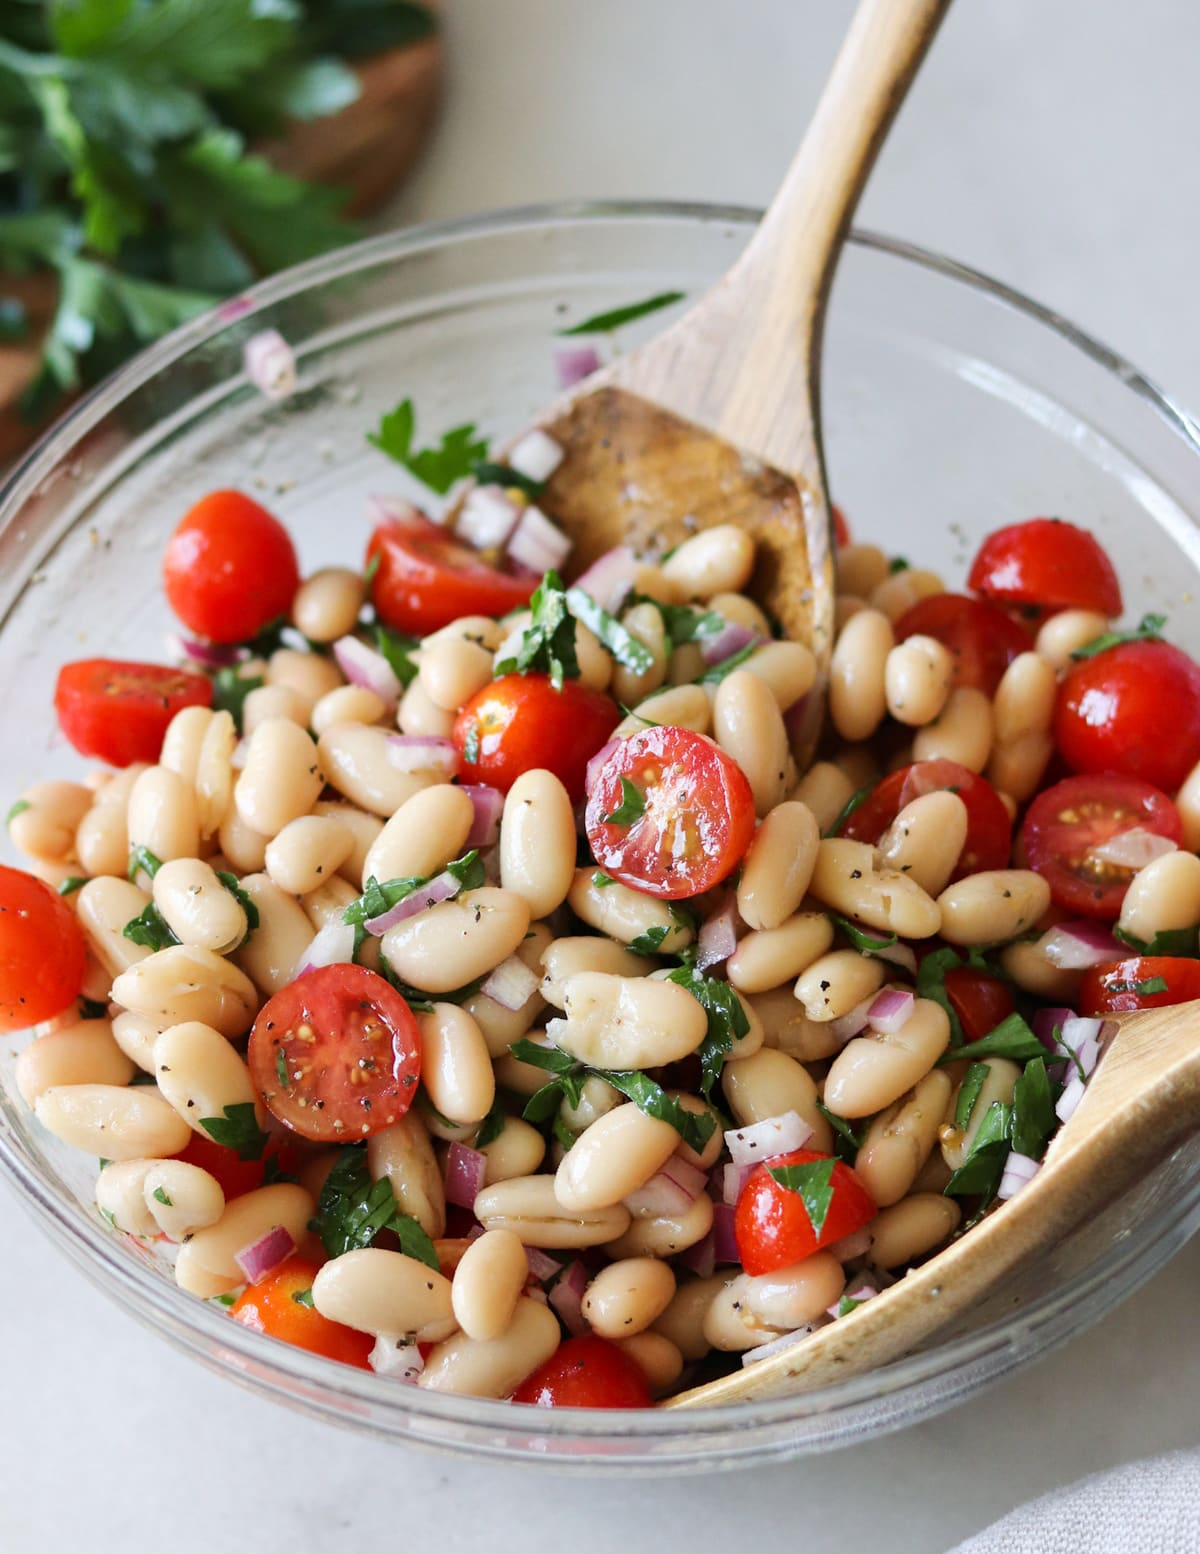 Close up side view of the finished Cannellini bean salad in a glass bowl with serving spoons.